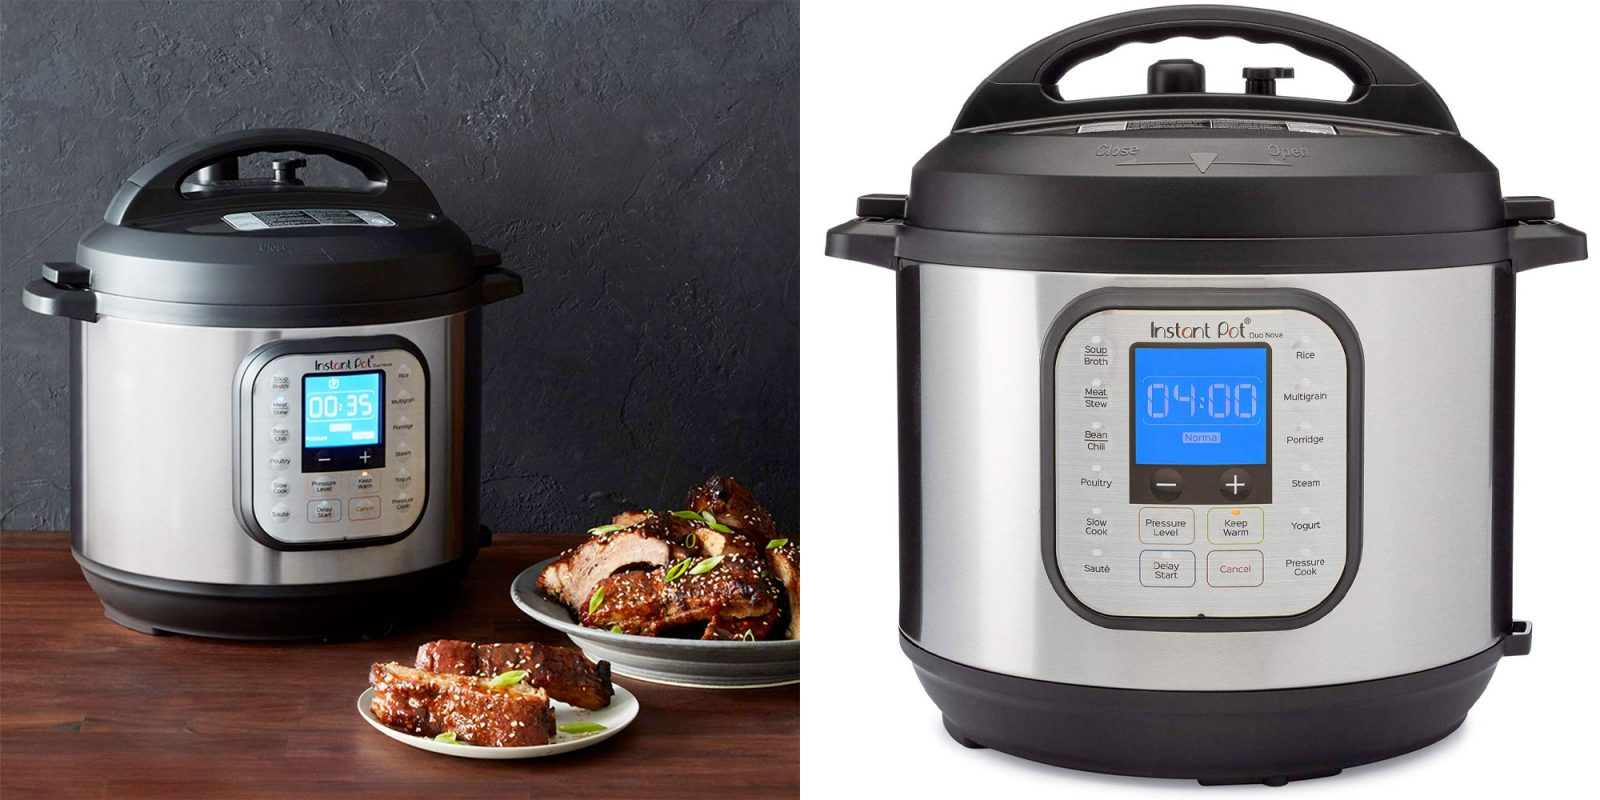 The Instant Pot Duo Nova 6-quart pressure cooker is a Christmas must at $60